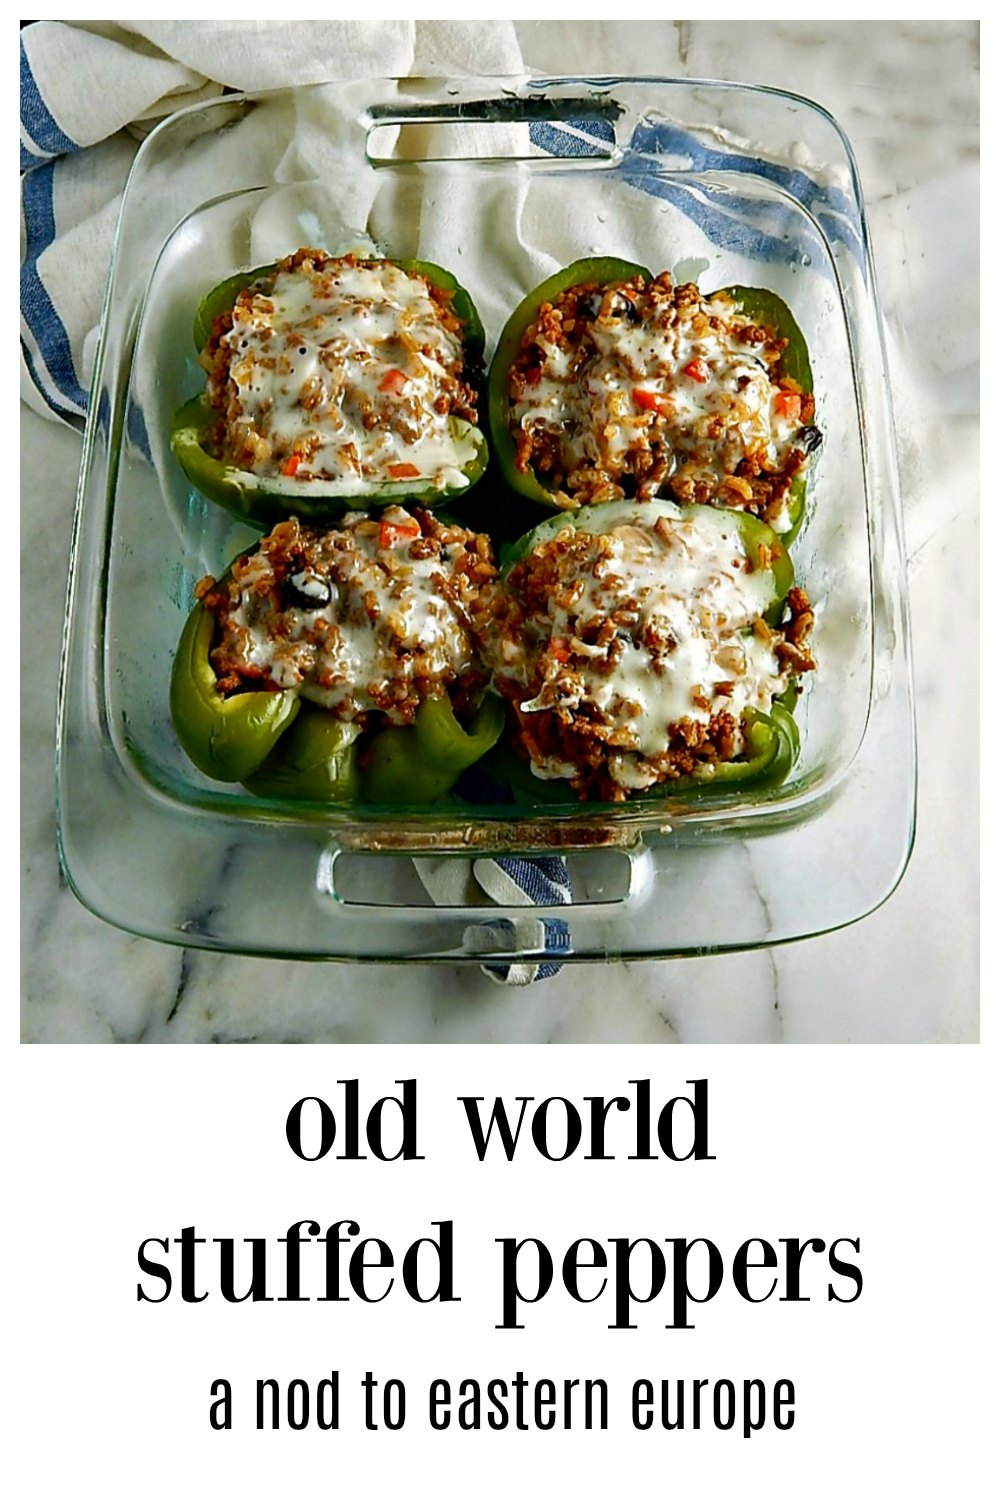 My 90-year-old Stepmom's secret recipe for Old World Stuffed Peppers has a secret - they're done in the microwave! The peppers stay fresh & gorgeous! They're the best I've ever had and lean towards her Czech/German roots with the old world spicing. #StuffedPeppers #OldStyleStuffedPeppers #ClassicStuffedPeppers #CzechStuffedPeppers #GermanStuffedPeppers